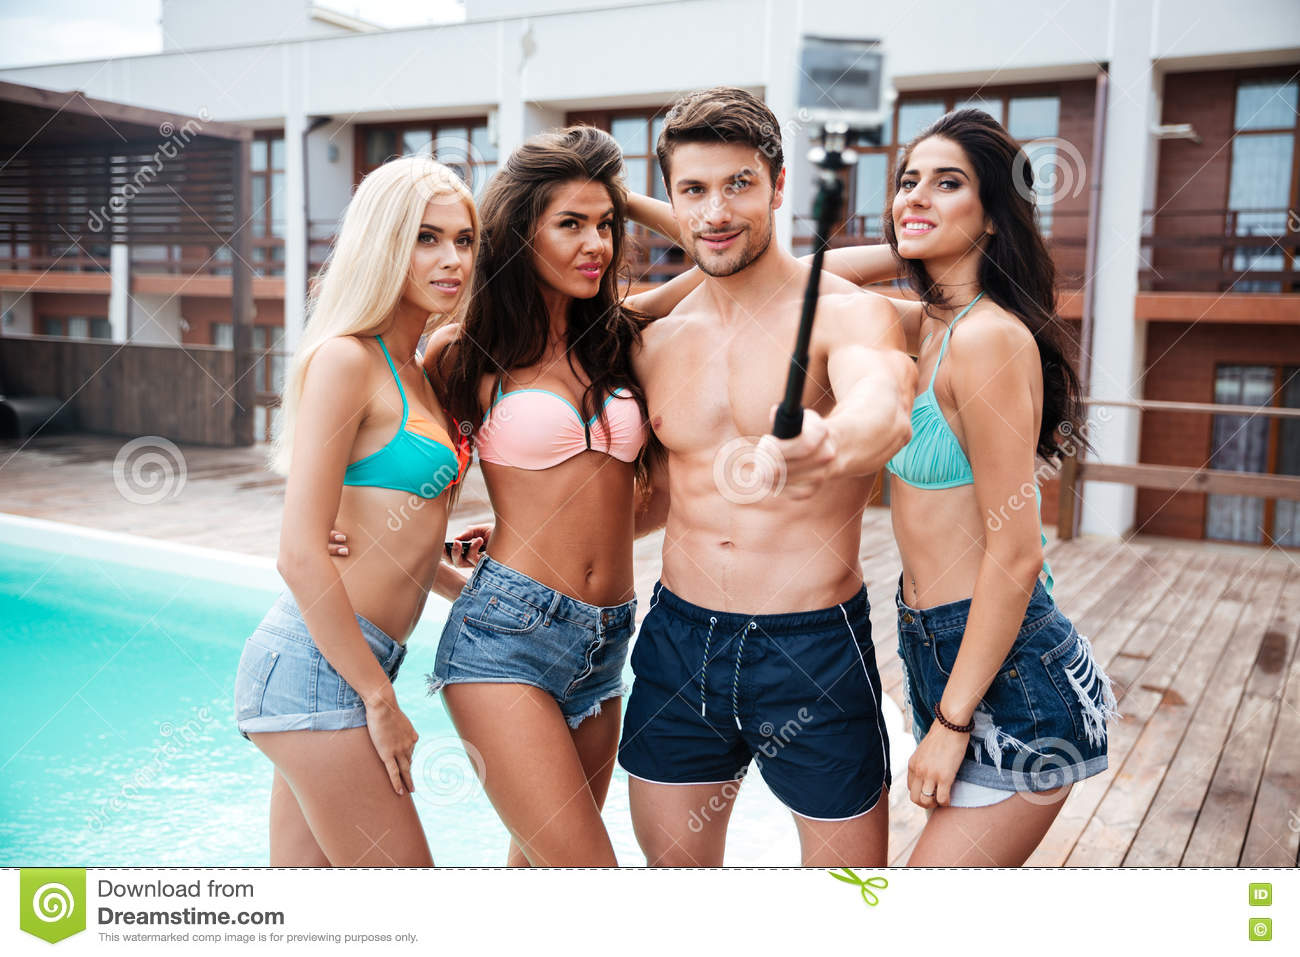 f432d8c623cee Handsome young men and three girls taking selfie with smartphone and selfie  stick standing near swimming pool